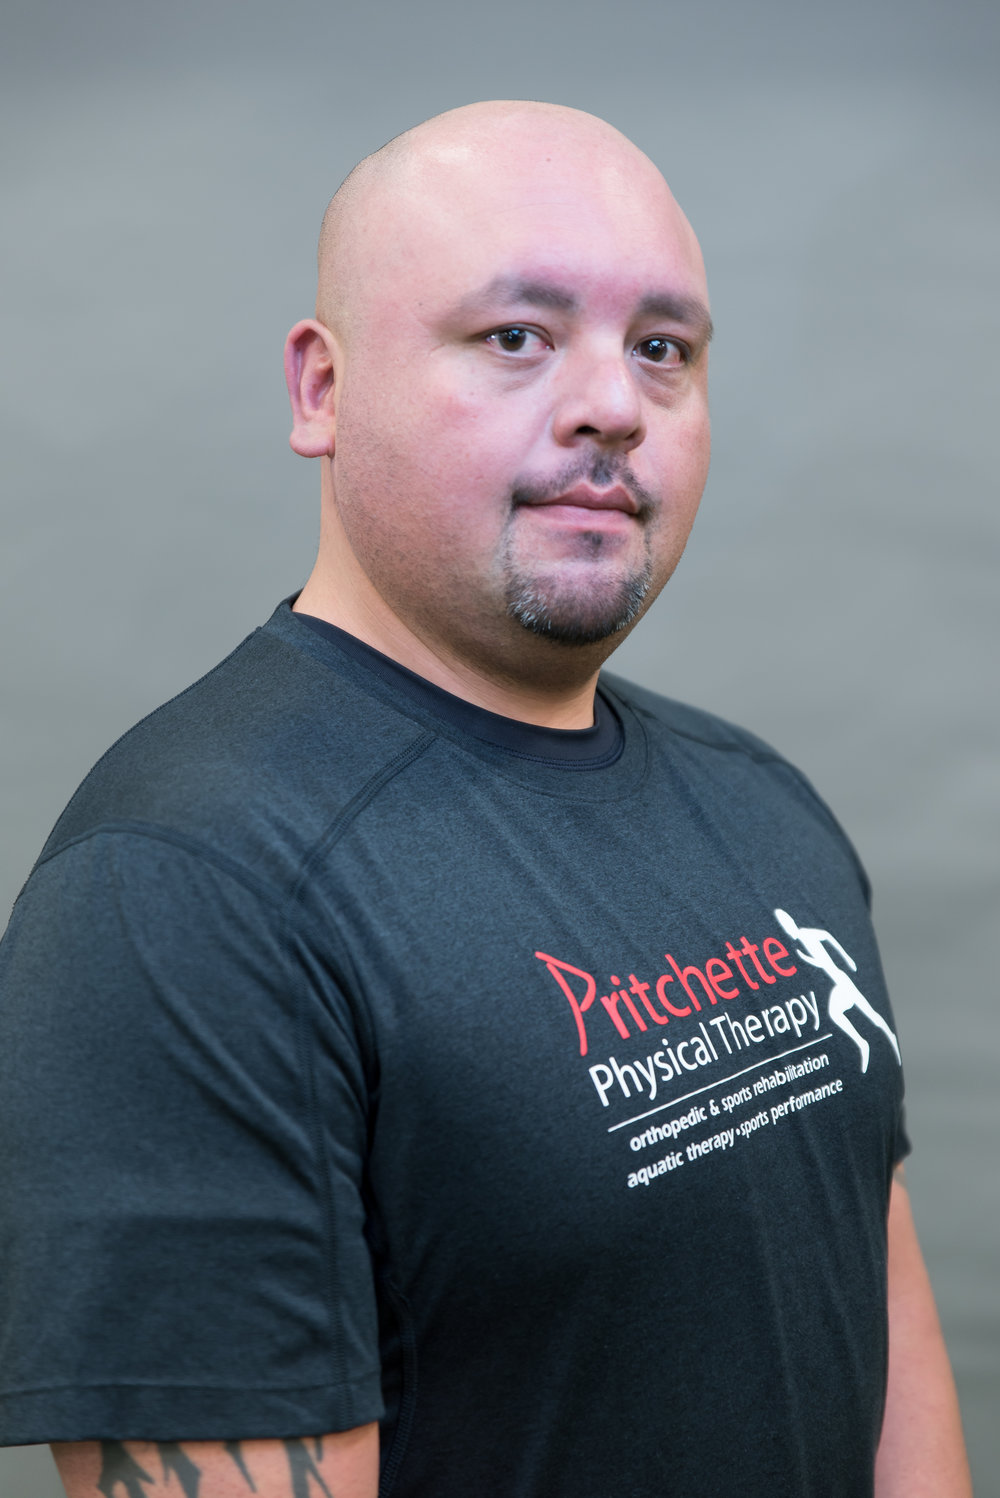 jesus-jesse-rivera_physical-therapy-technician.jpg